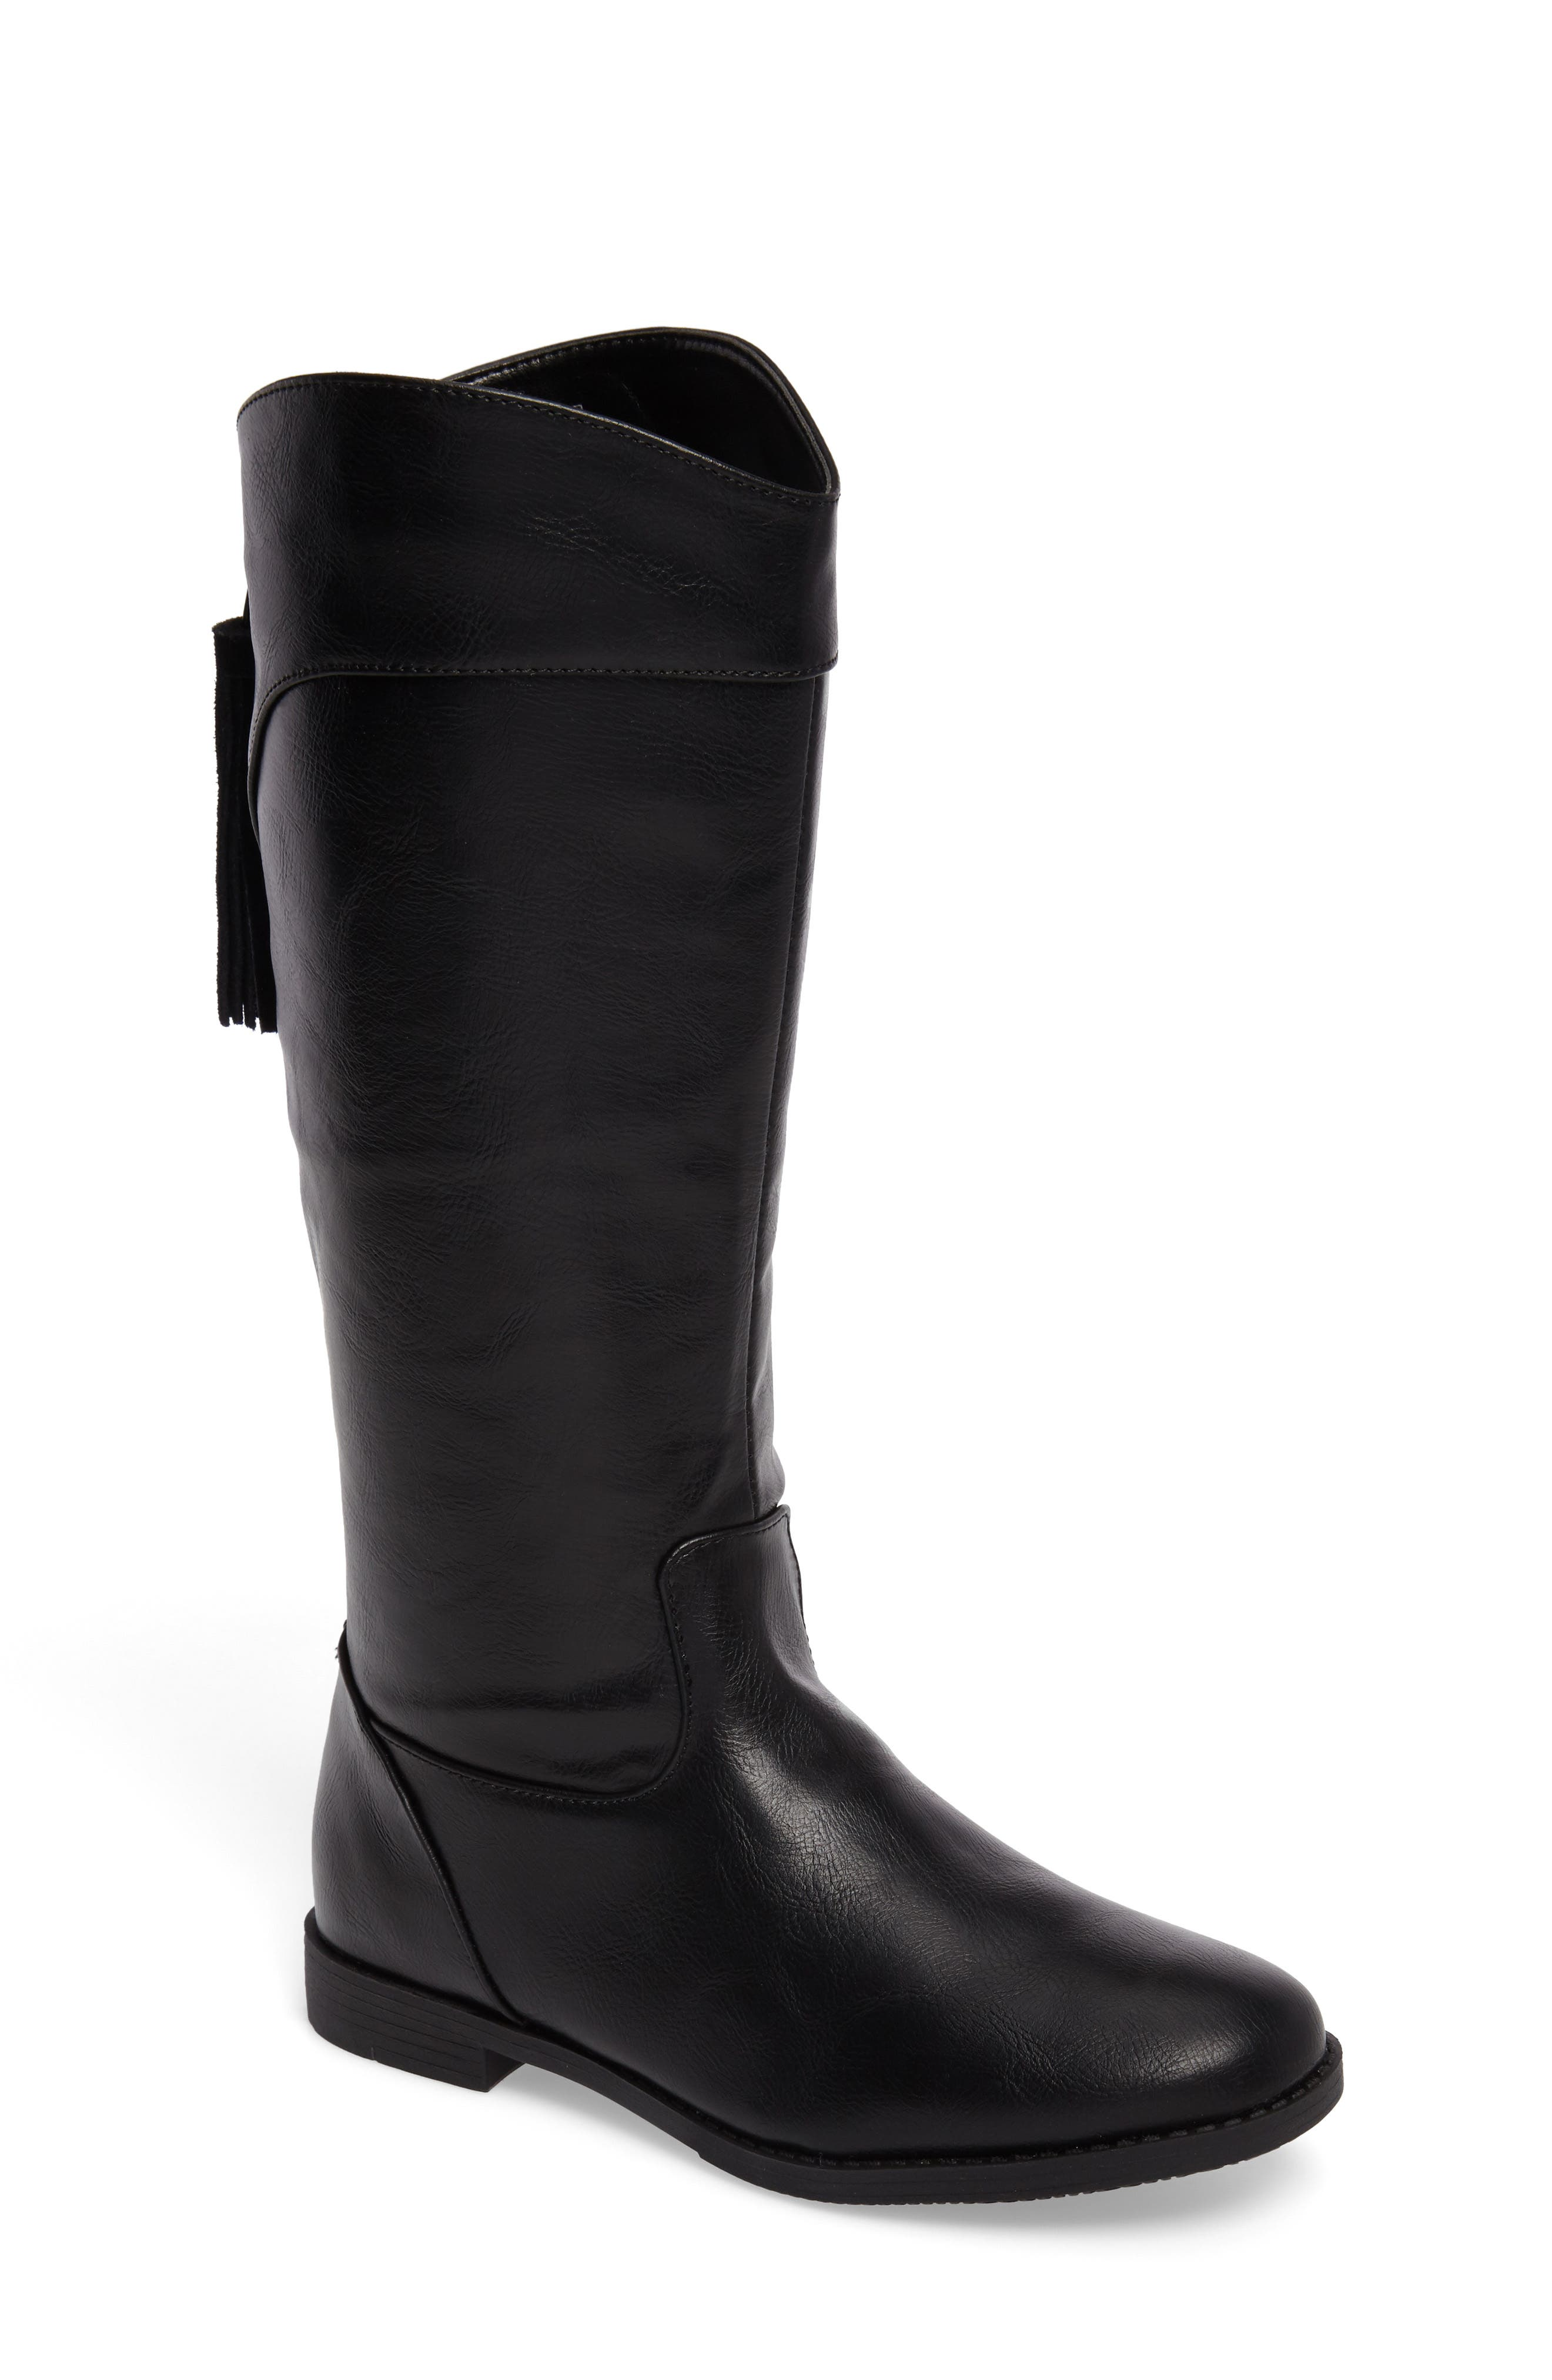 Alternate Image 1 Selected - Kenneth Cole New York Kennedy Tassel Tall Boot (Toddler, Little Kid & Big Kid)